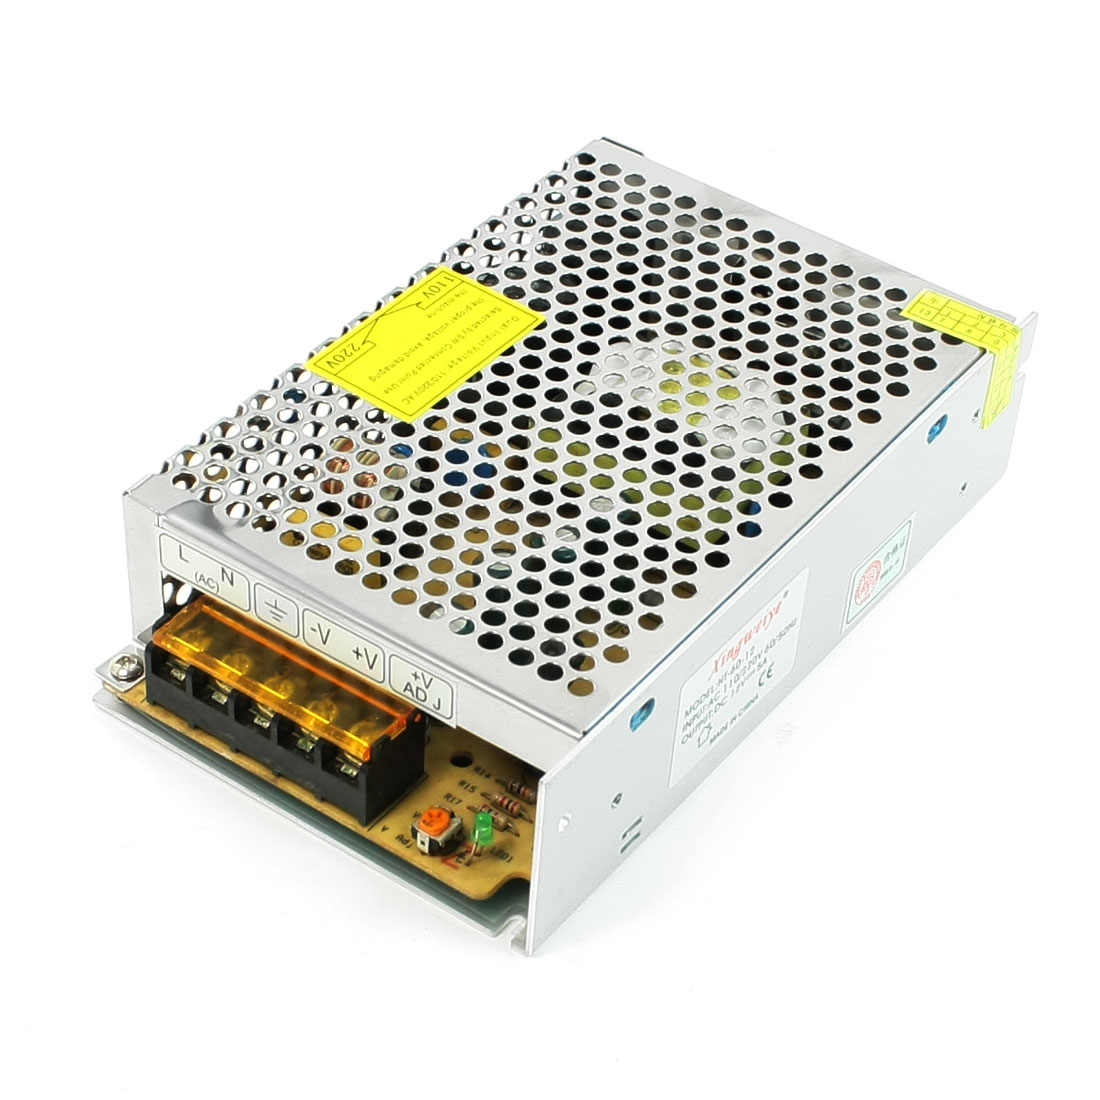 AC110/220V 12V 5A 60W Switching Power Supply Driver for LED Strip Light